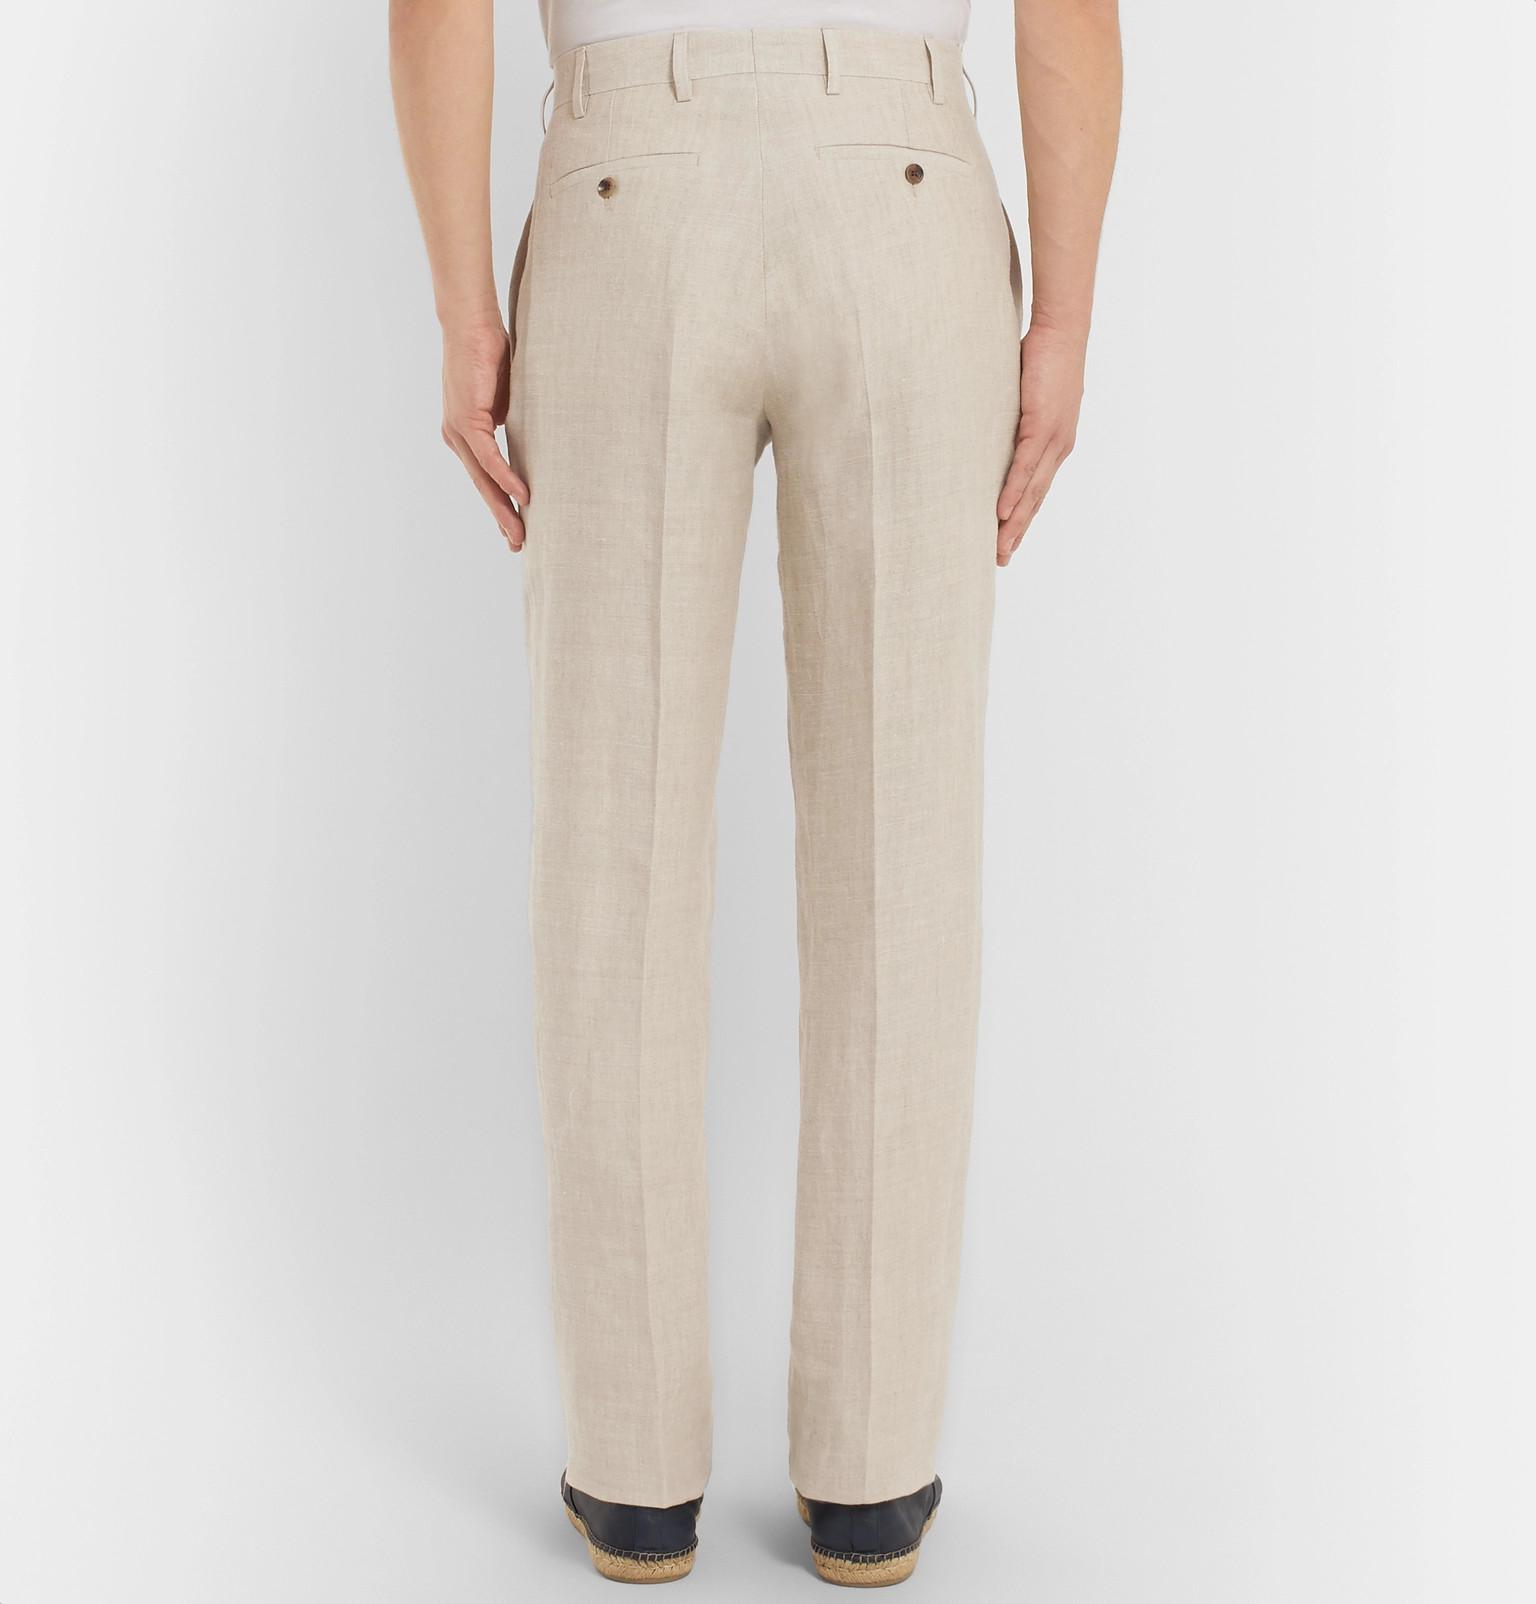 Anderson & Sheppard Linen Trousers in Natural for Men